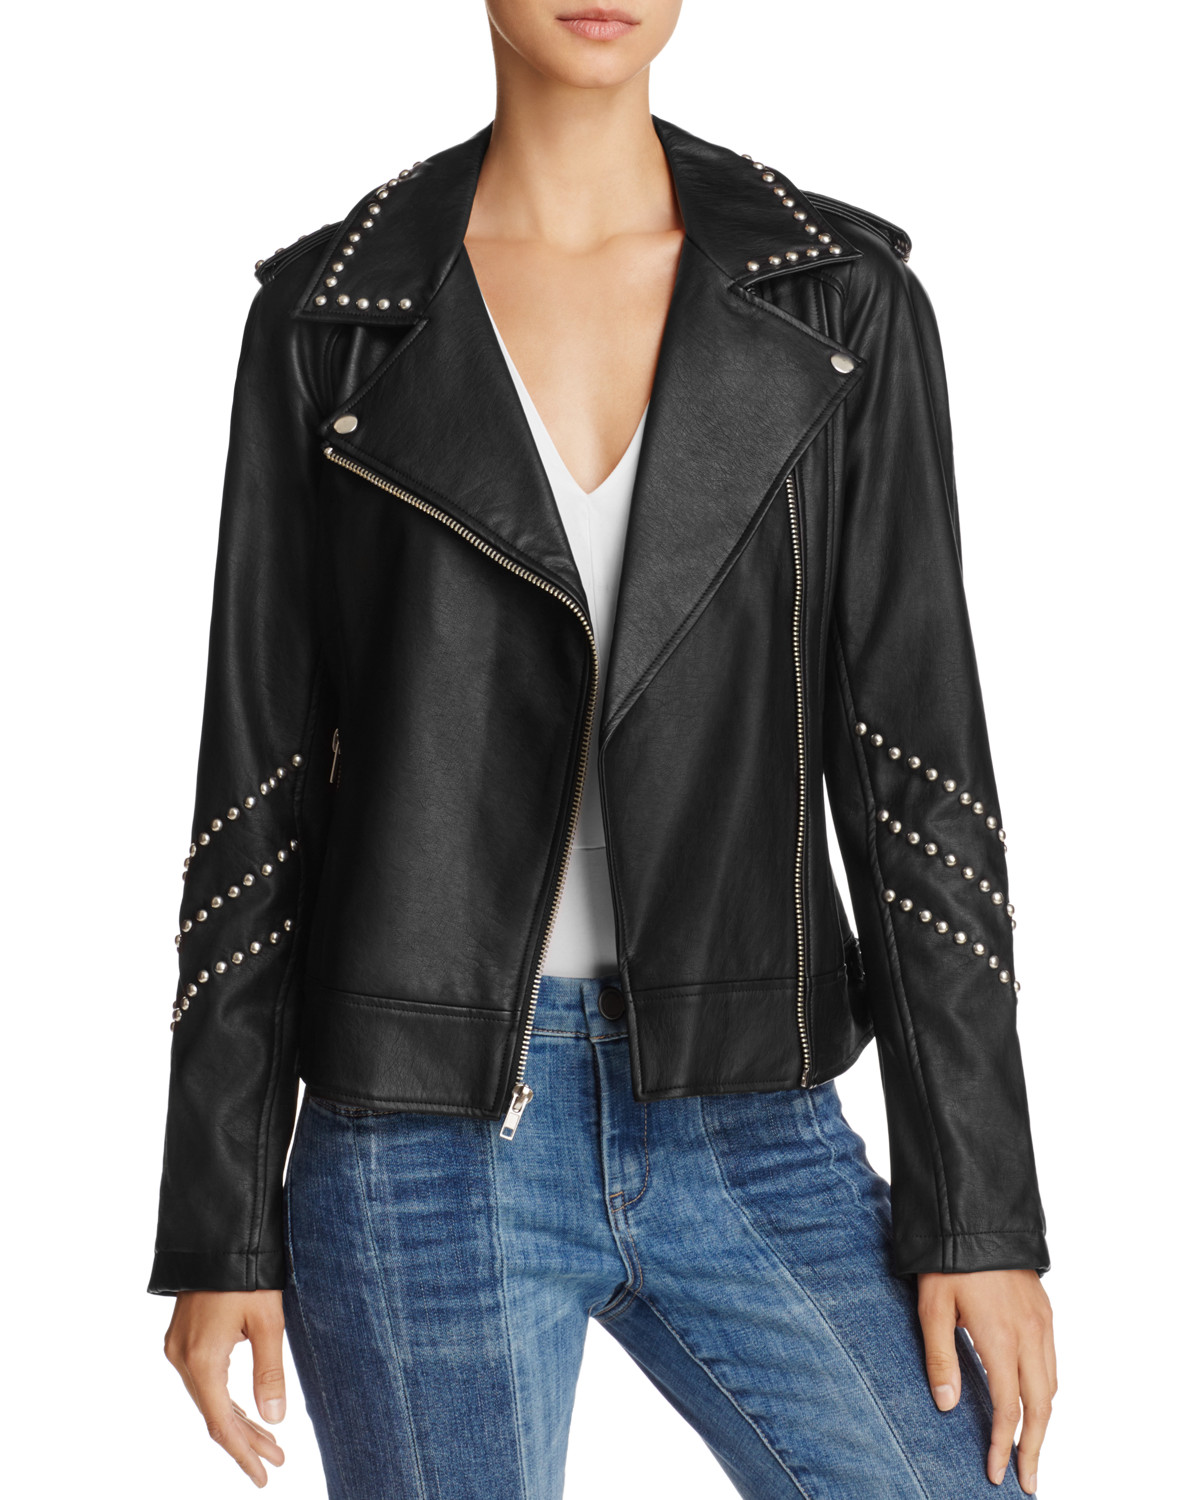 BB Dakota Jerilyn Studded Faux Leather Moto Jacket from Bloomingdale's{&amp;nbsp;} // Price: Org. $120, Sale. $90 // (Photo courtesy: Bloomingdale's)<p></p>